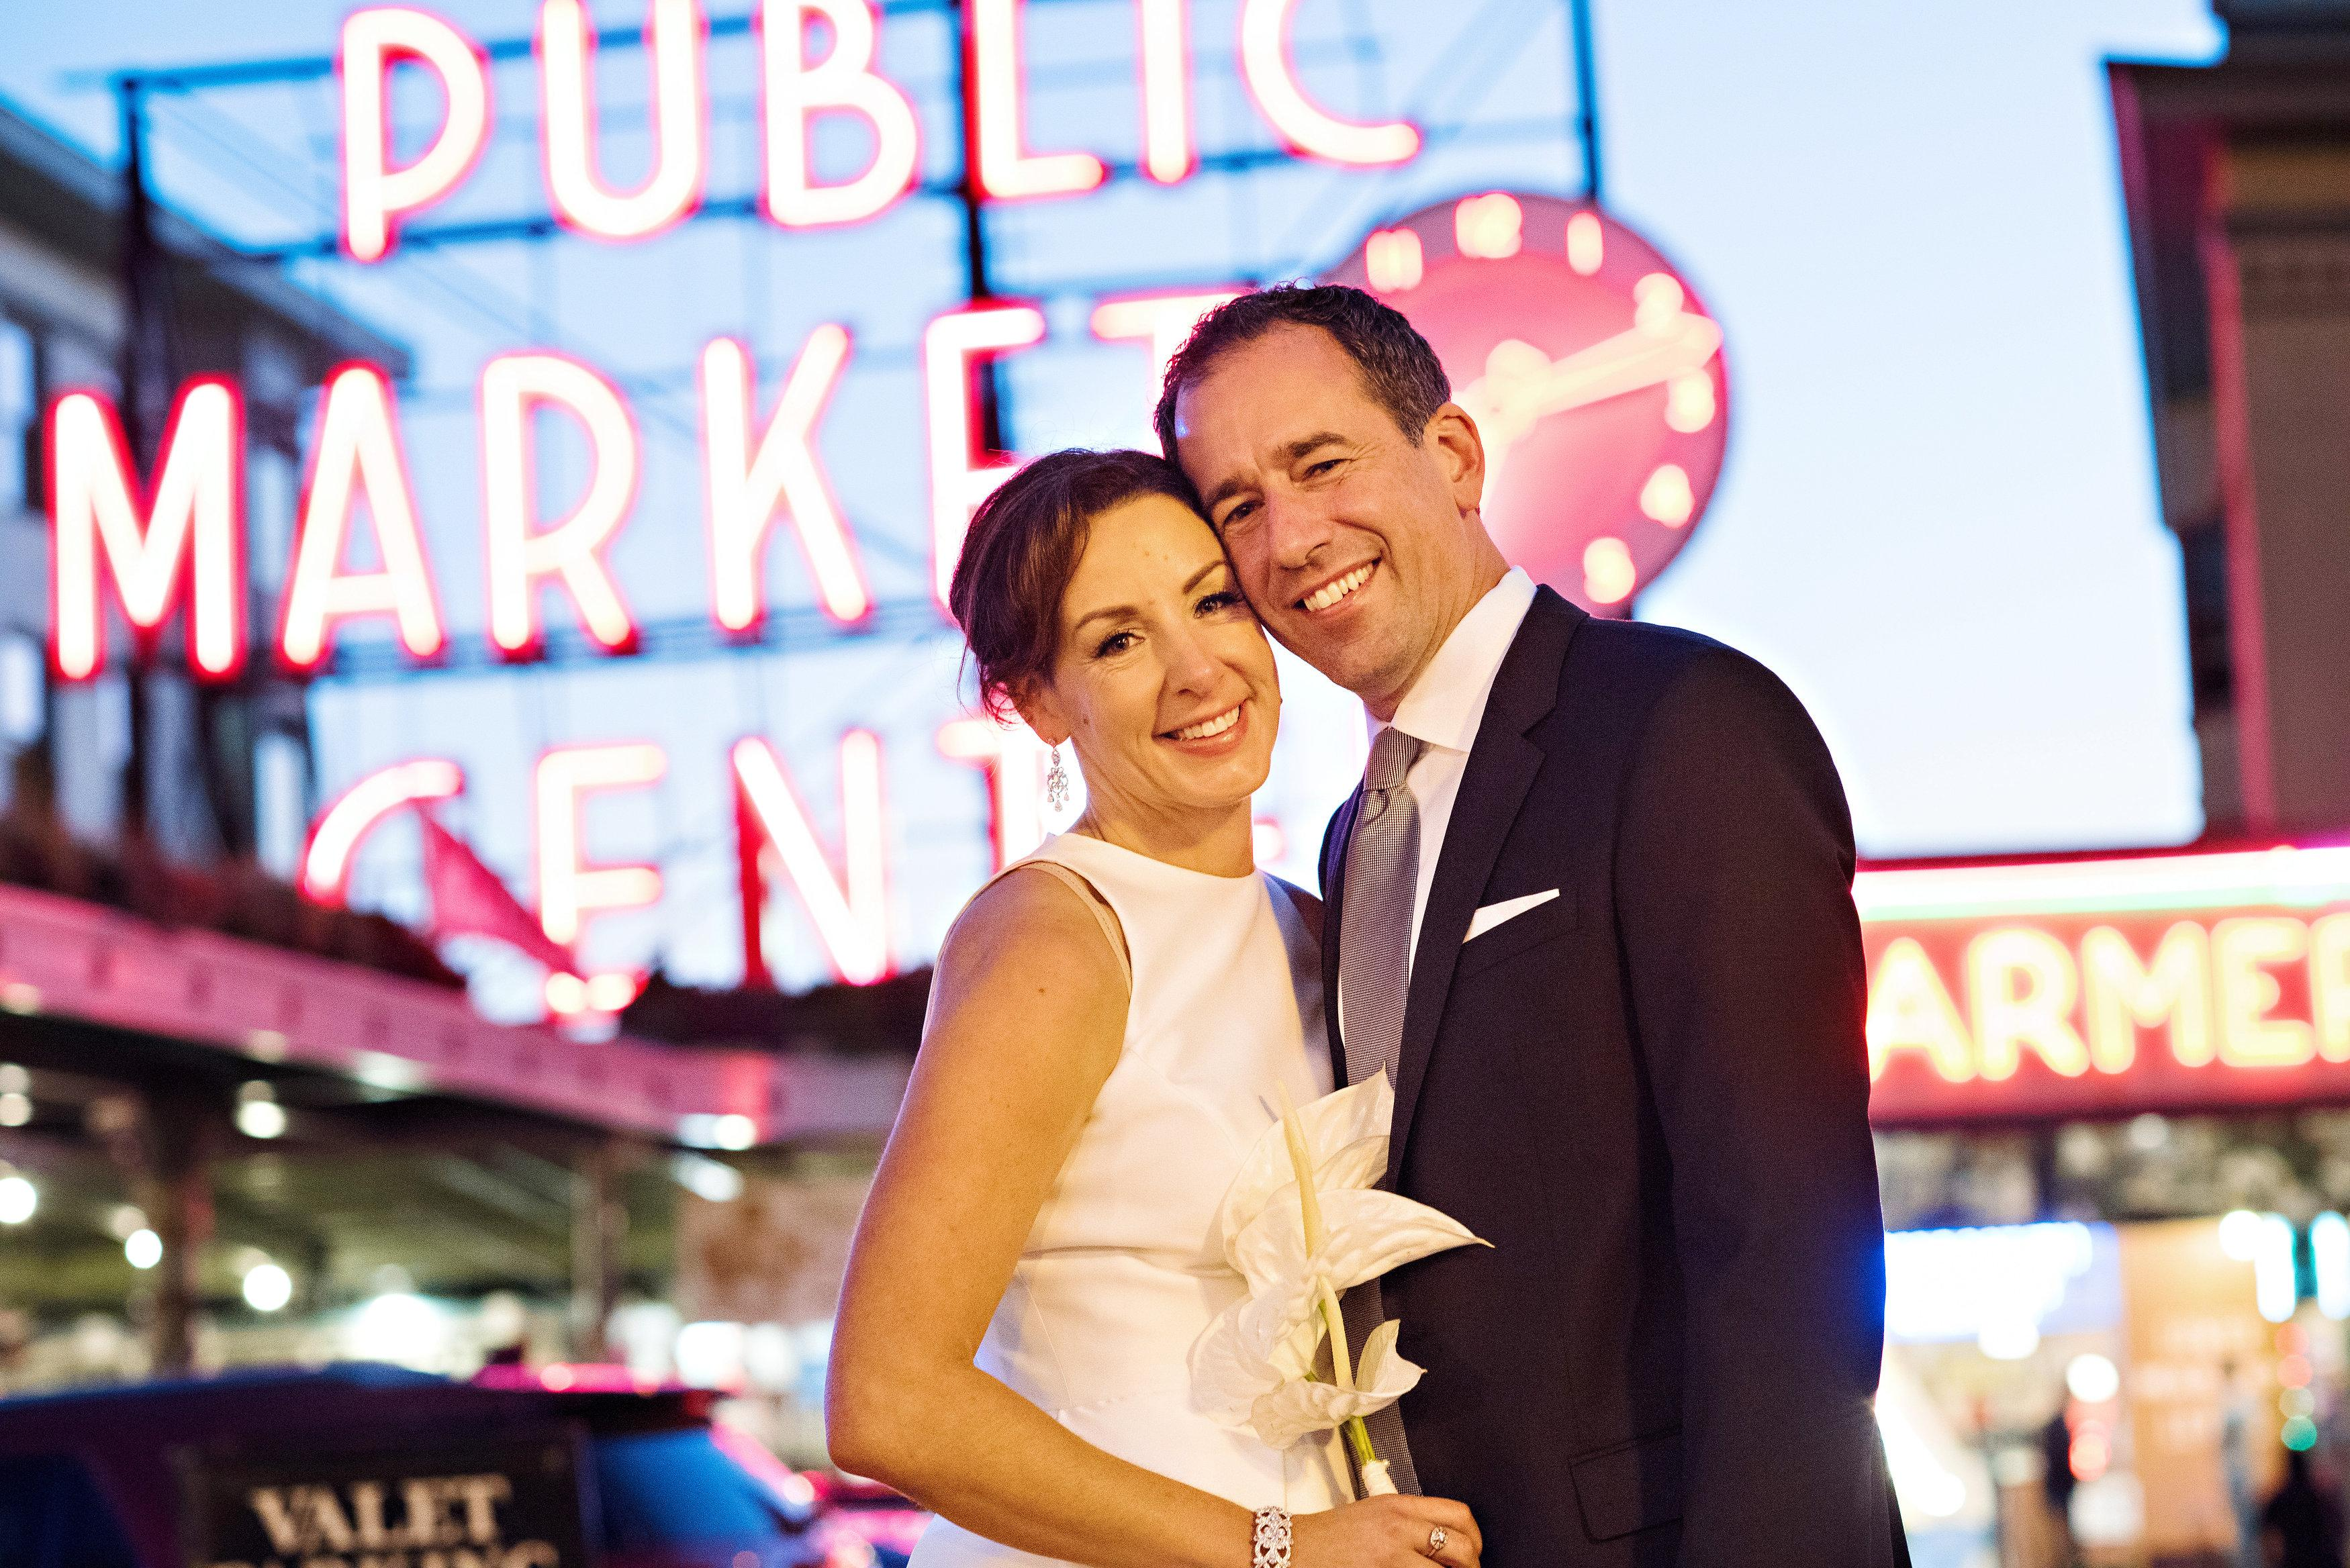 Emelie and Dominik got married on October 5th, 2015 with the beautiful backdrop of Beecher's Loft in Pike Place Market with their reception at Axis in Pioneer Square. The couple and Barbie Hull strolled around Pike Place Market to capture the beautiful images you are about to indulge yourself in! Click through the gallery and get wedding inspo, or to just gaze upon the beauty that is this glorious wedding. Do you or somebody you know have a wedding you think deserves the spotlight? We LOVE (pun intended) documenting love stories, so email us at hello@seattlerefined.com to submit some wedding or engagement shots! (Image: Barbie Hull Photography)